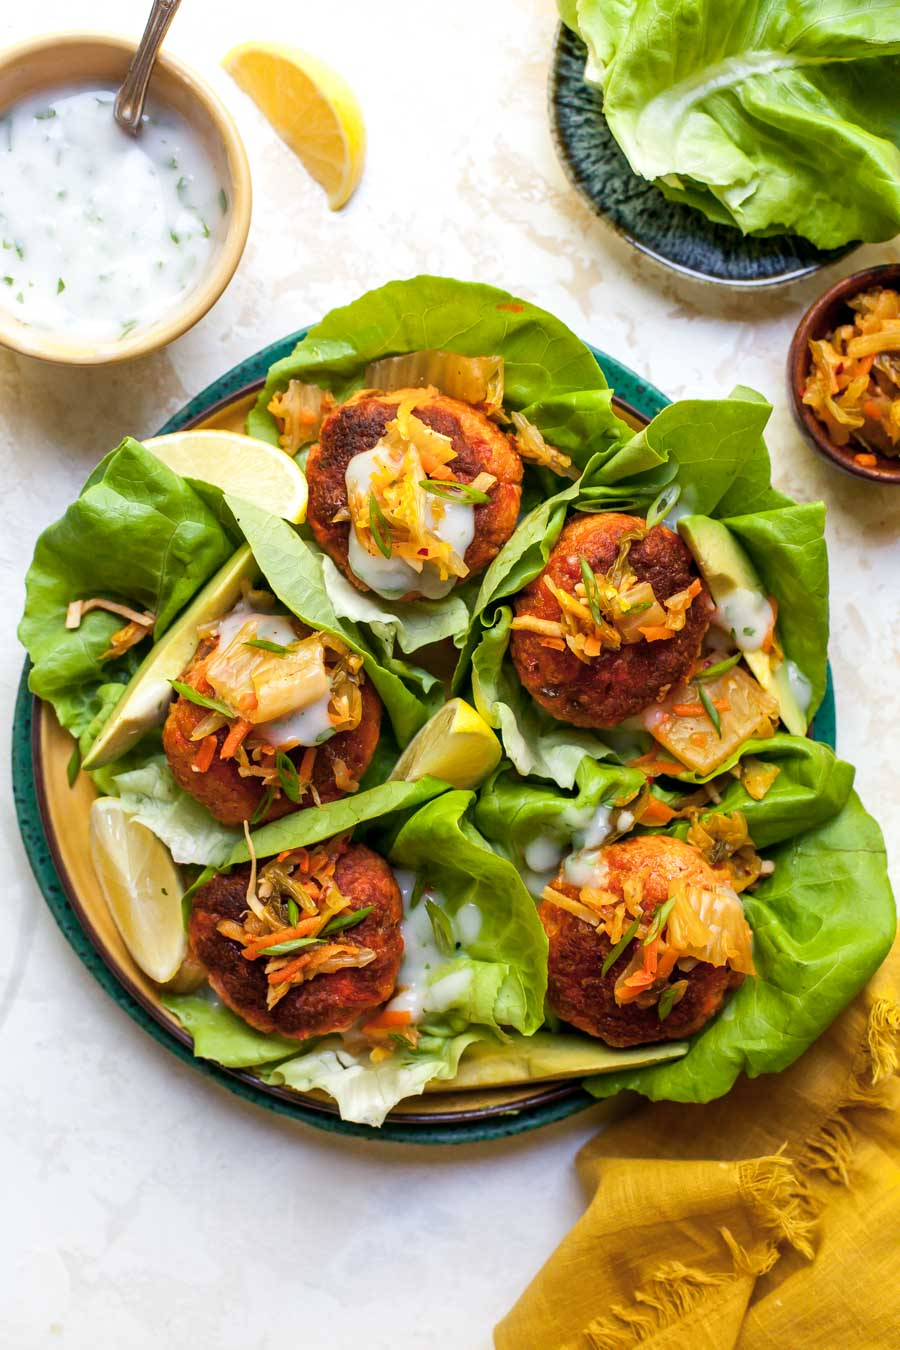 Curried Salmon Burger Lettuce Wraps with Kimchi and Yogurt Sauce